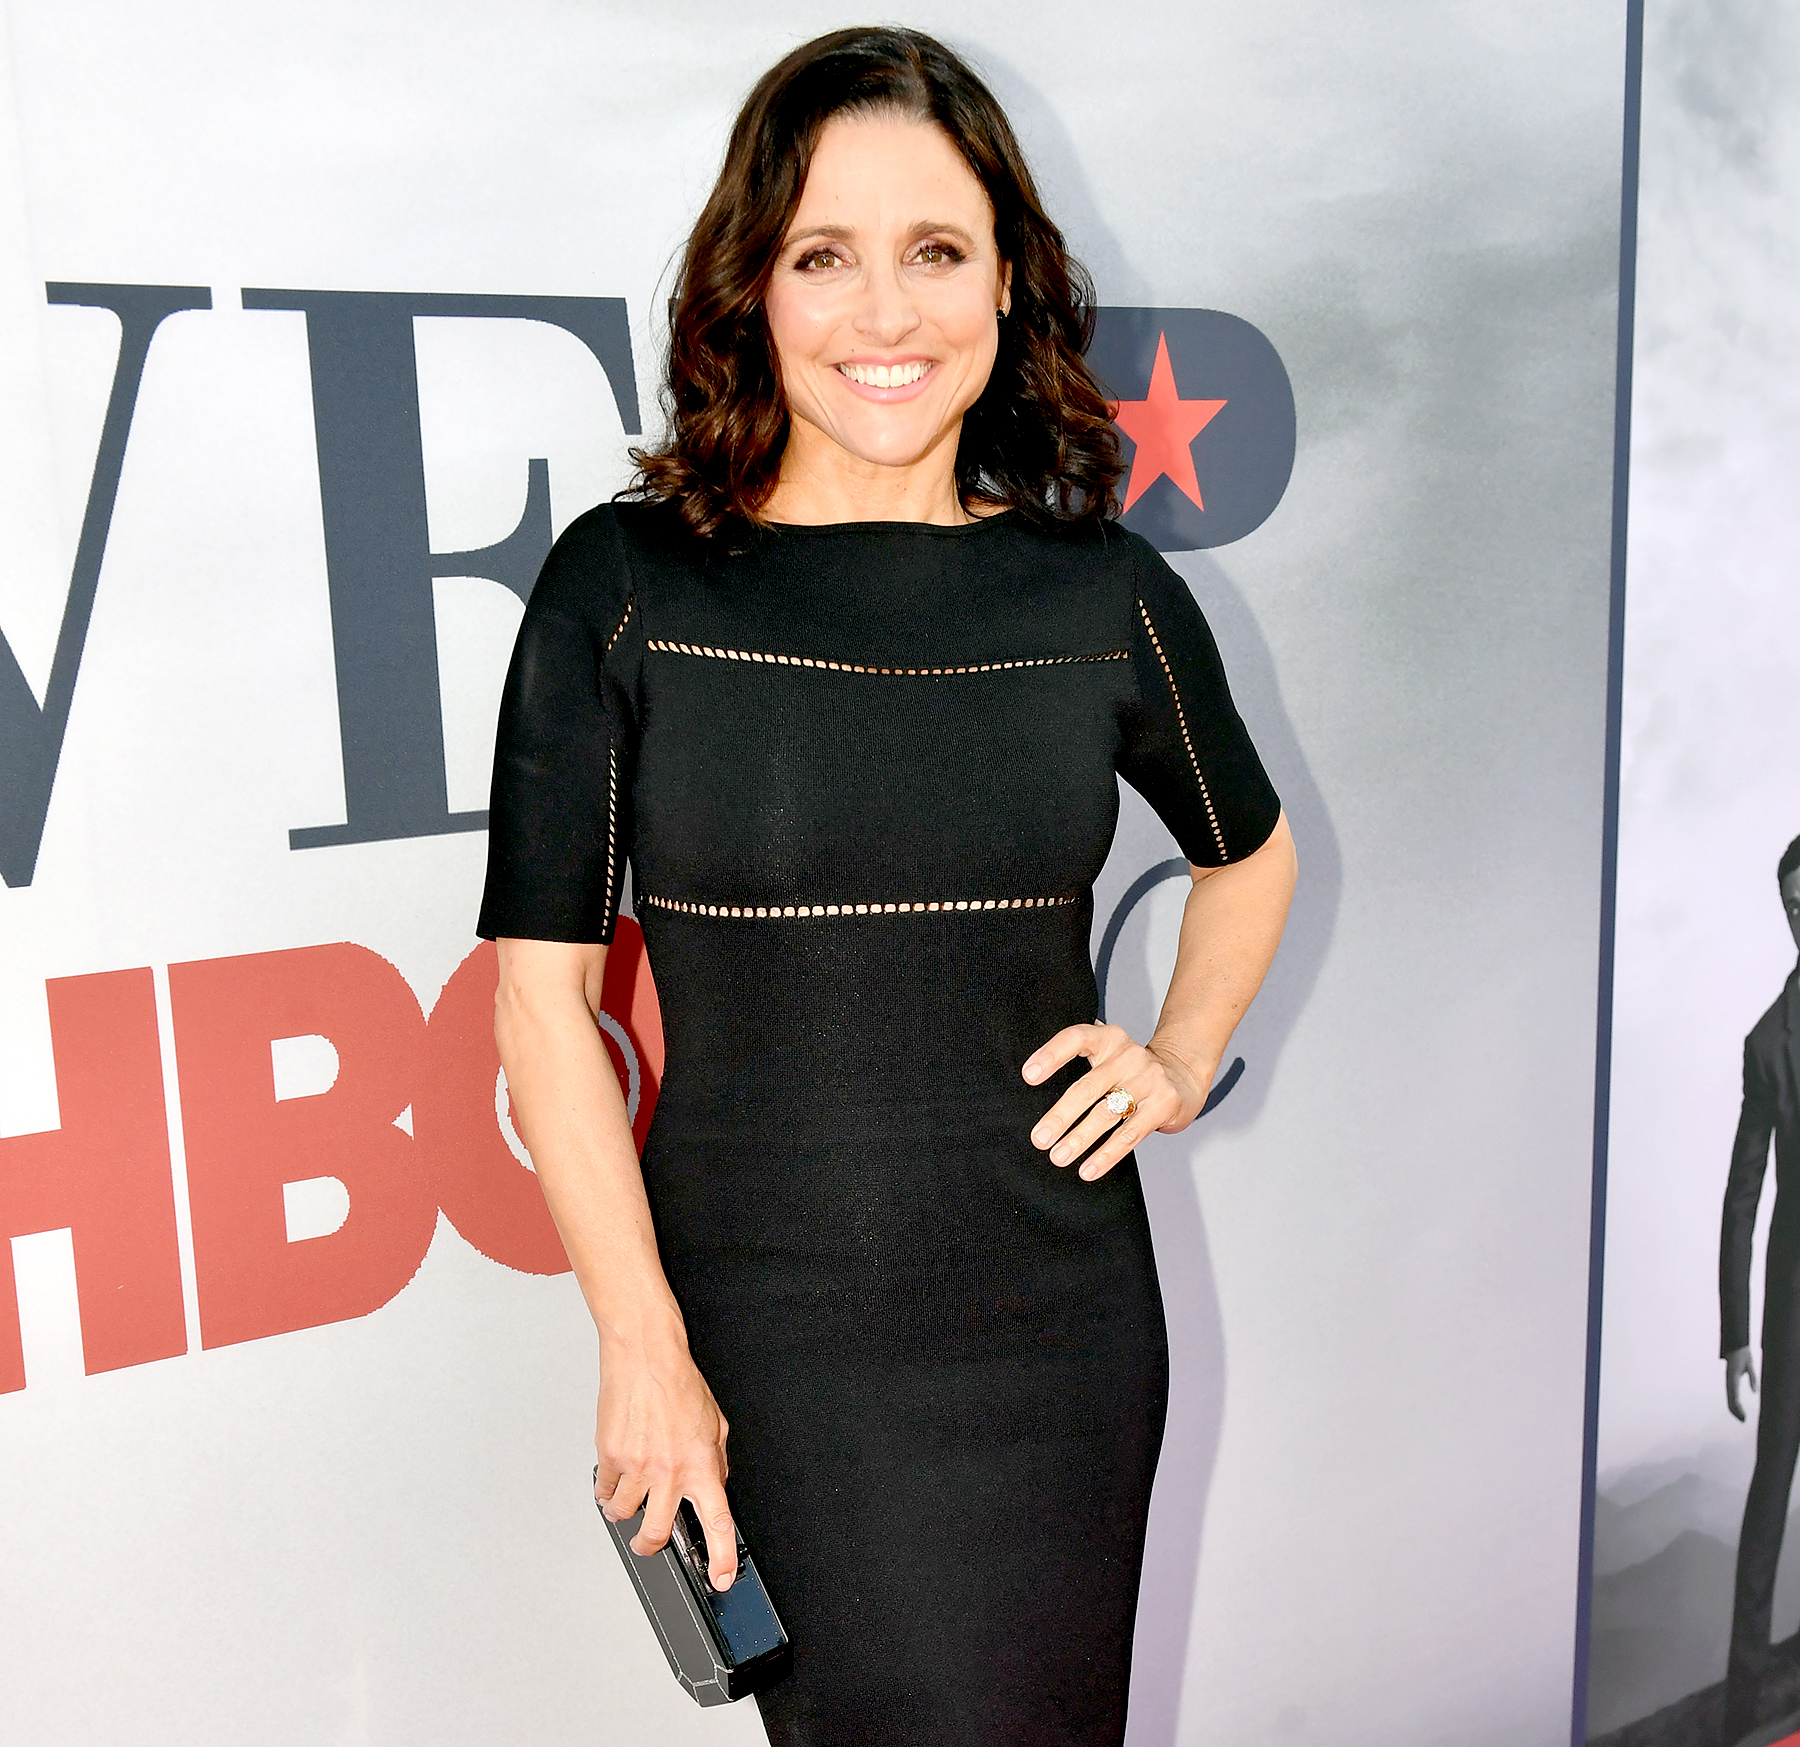 Julia Louis-Dreyfus: 'Great results' after cancer surgery